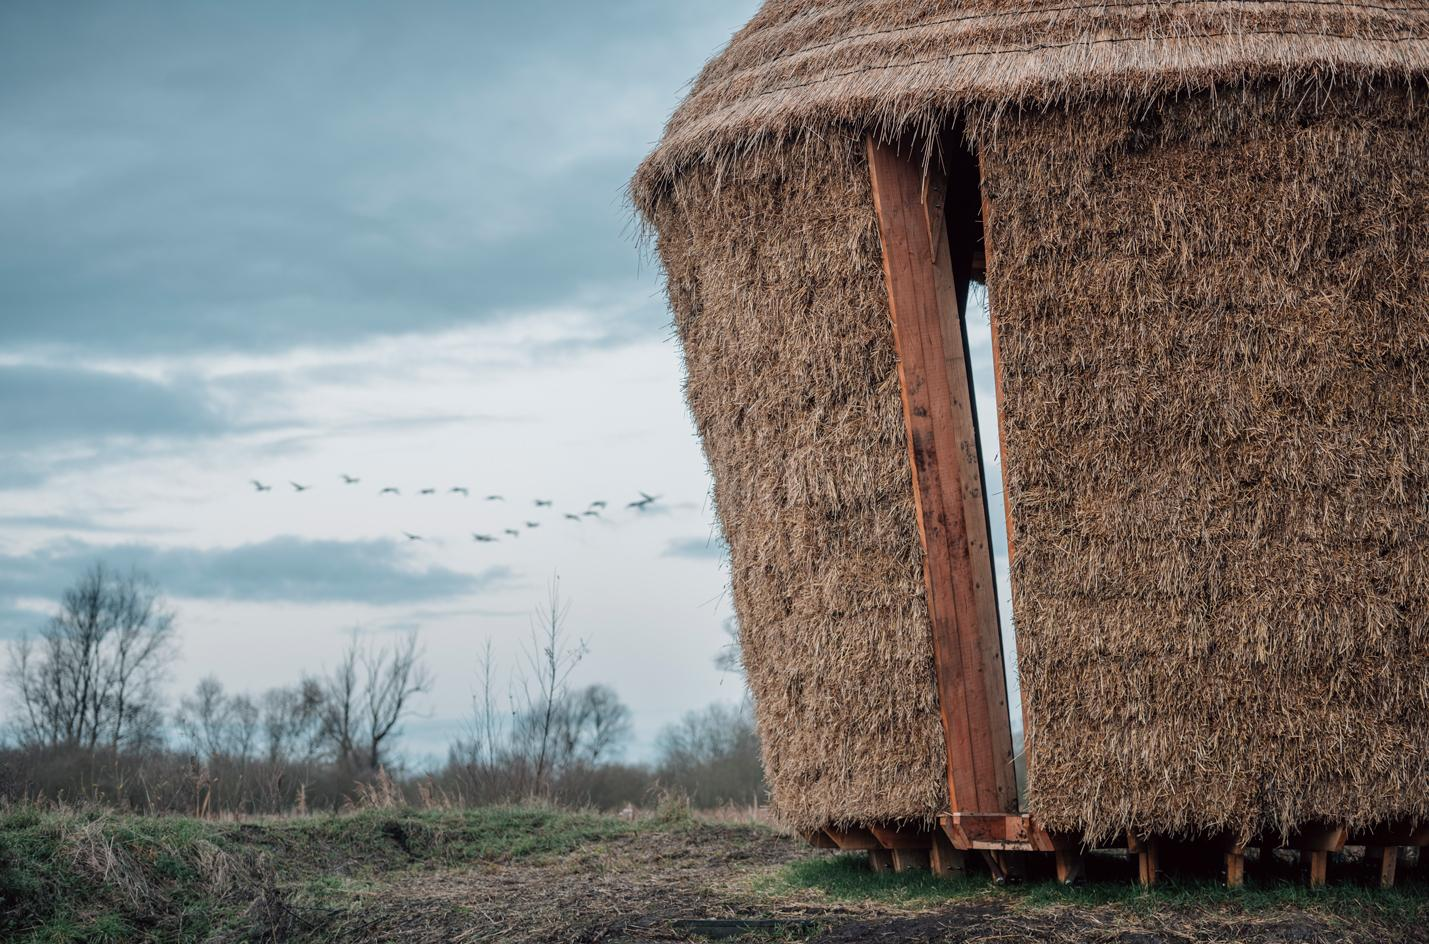 'Mother...' by Studio Morison, a sculpture in the Wicken Fen nature reserve